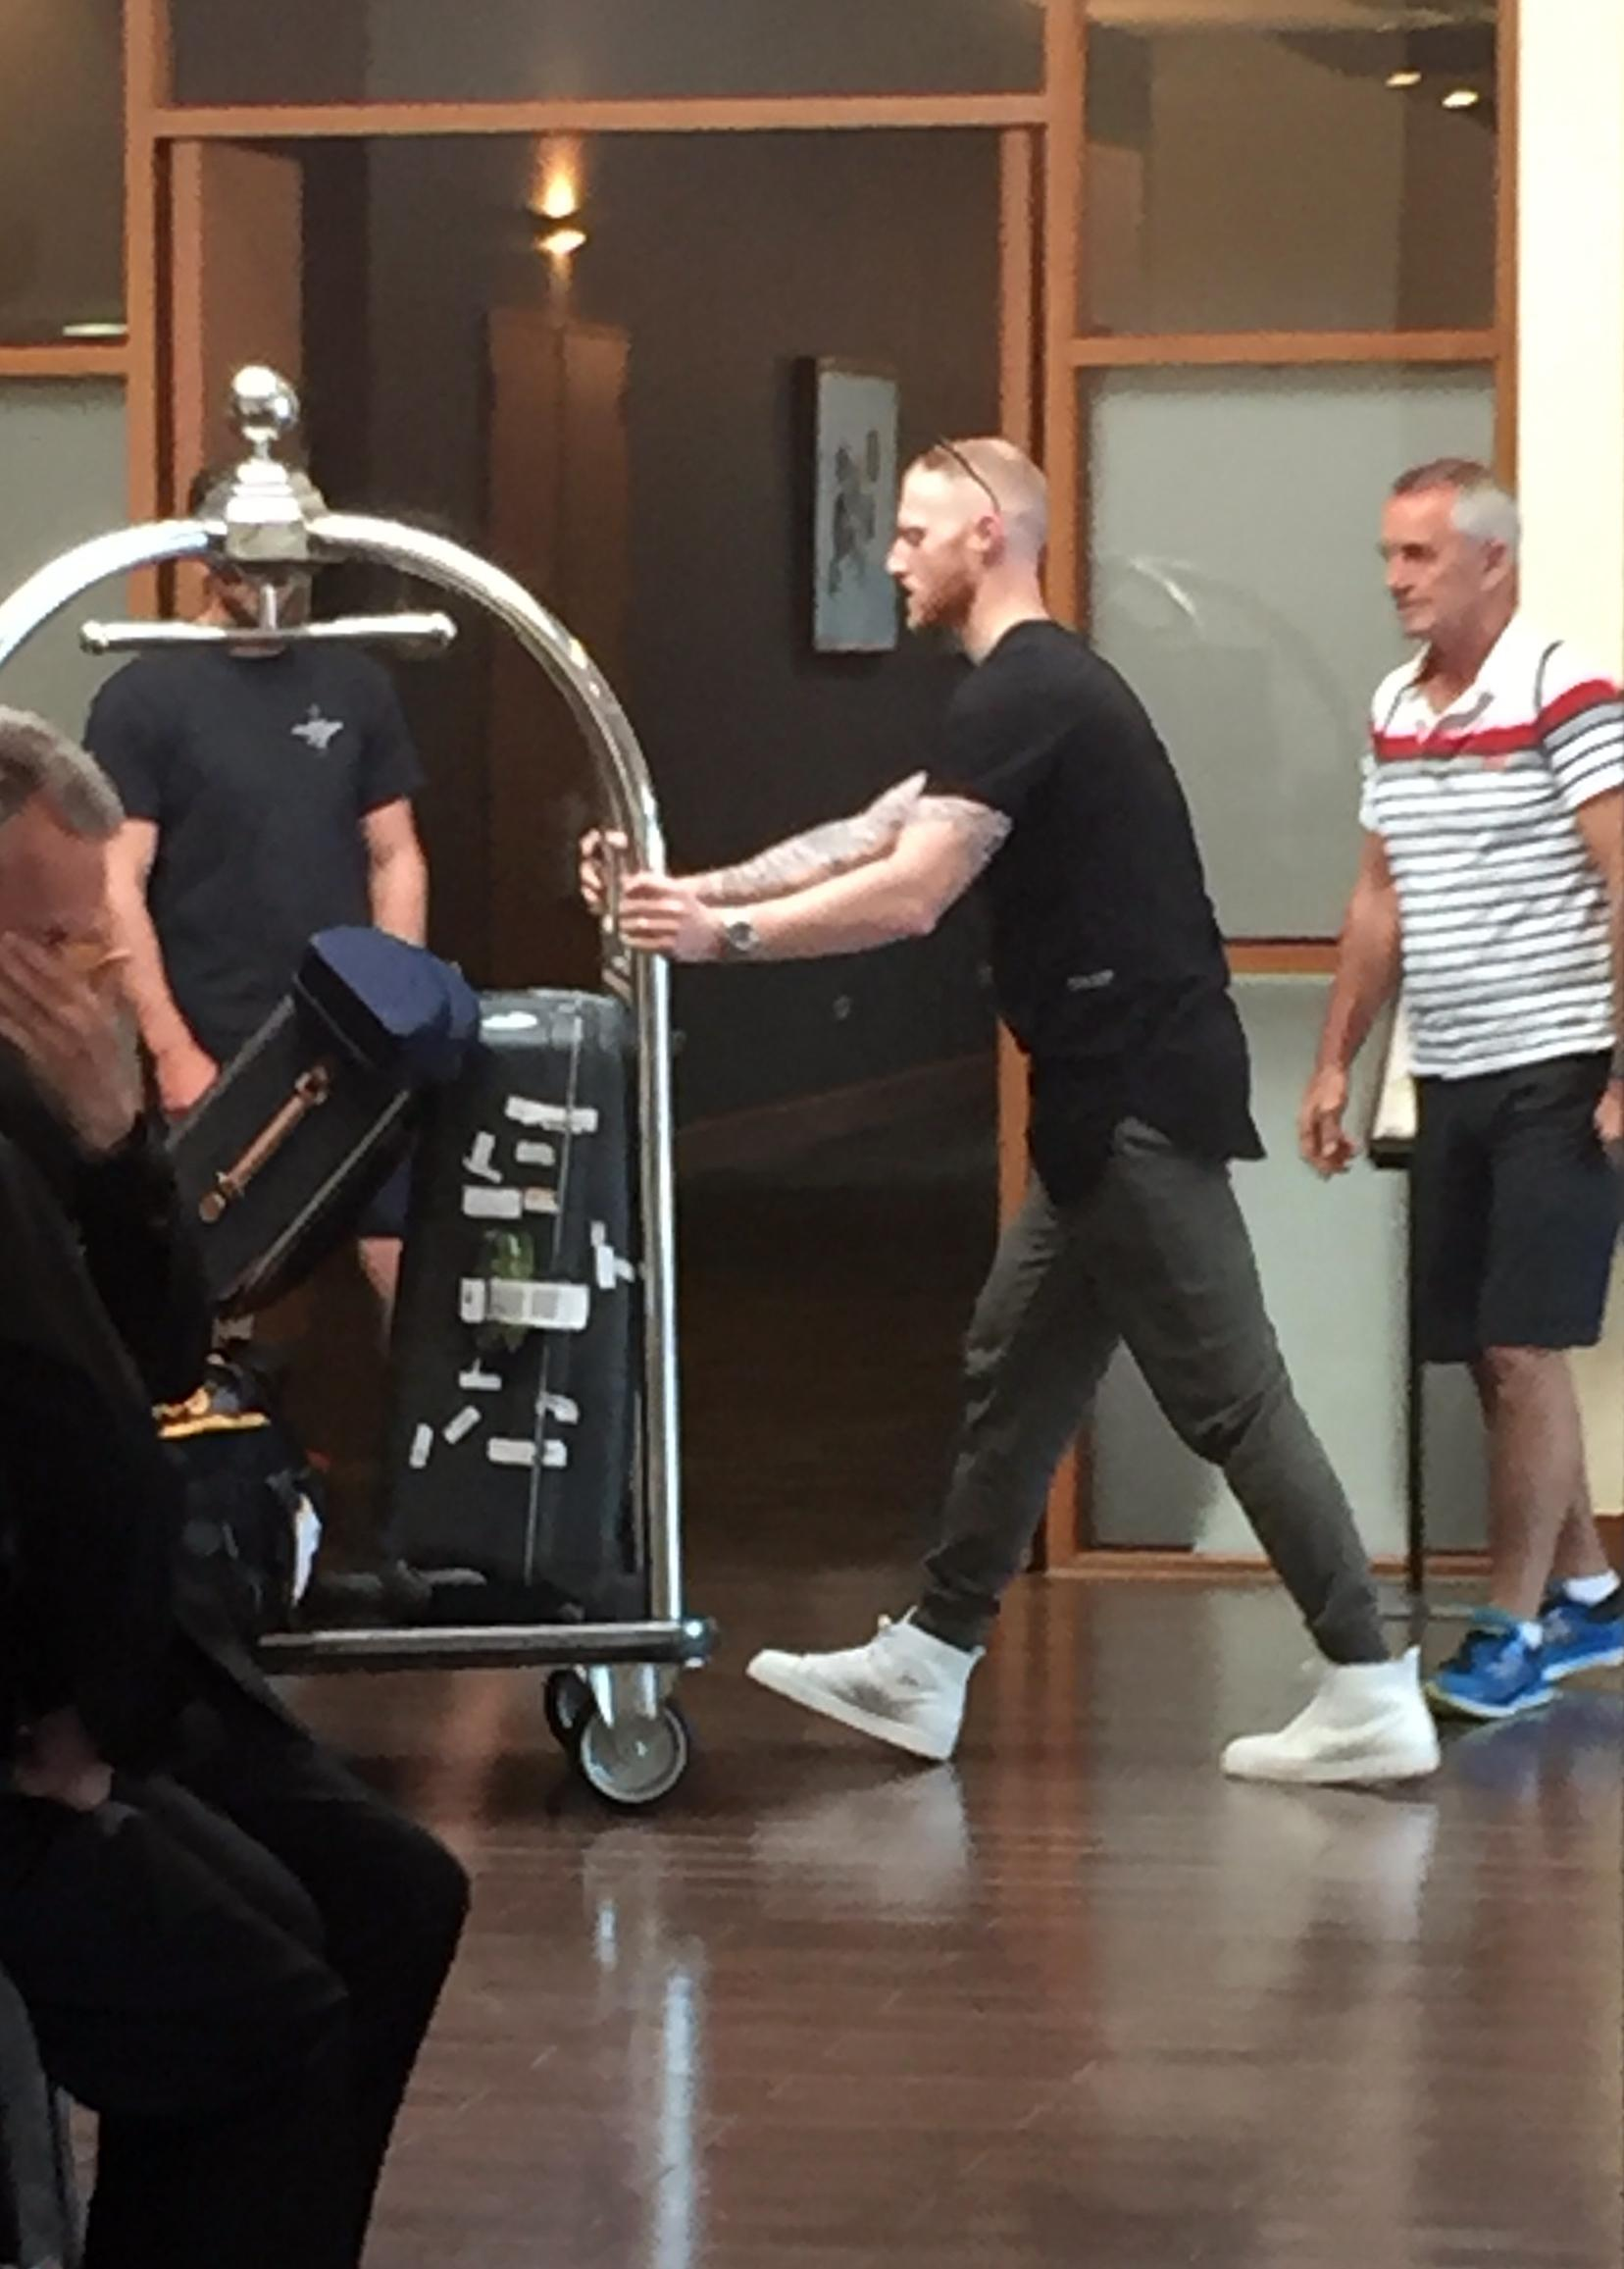 Stokes is later seen in the hotel wheeling his bags towards his room